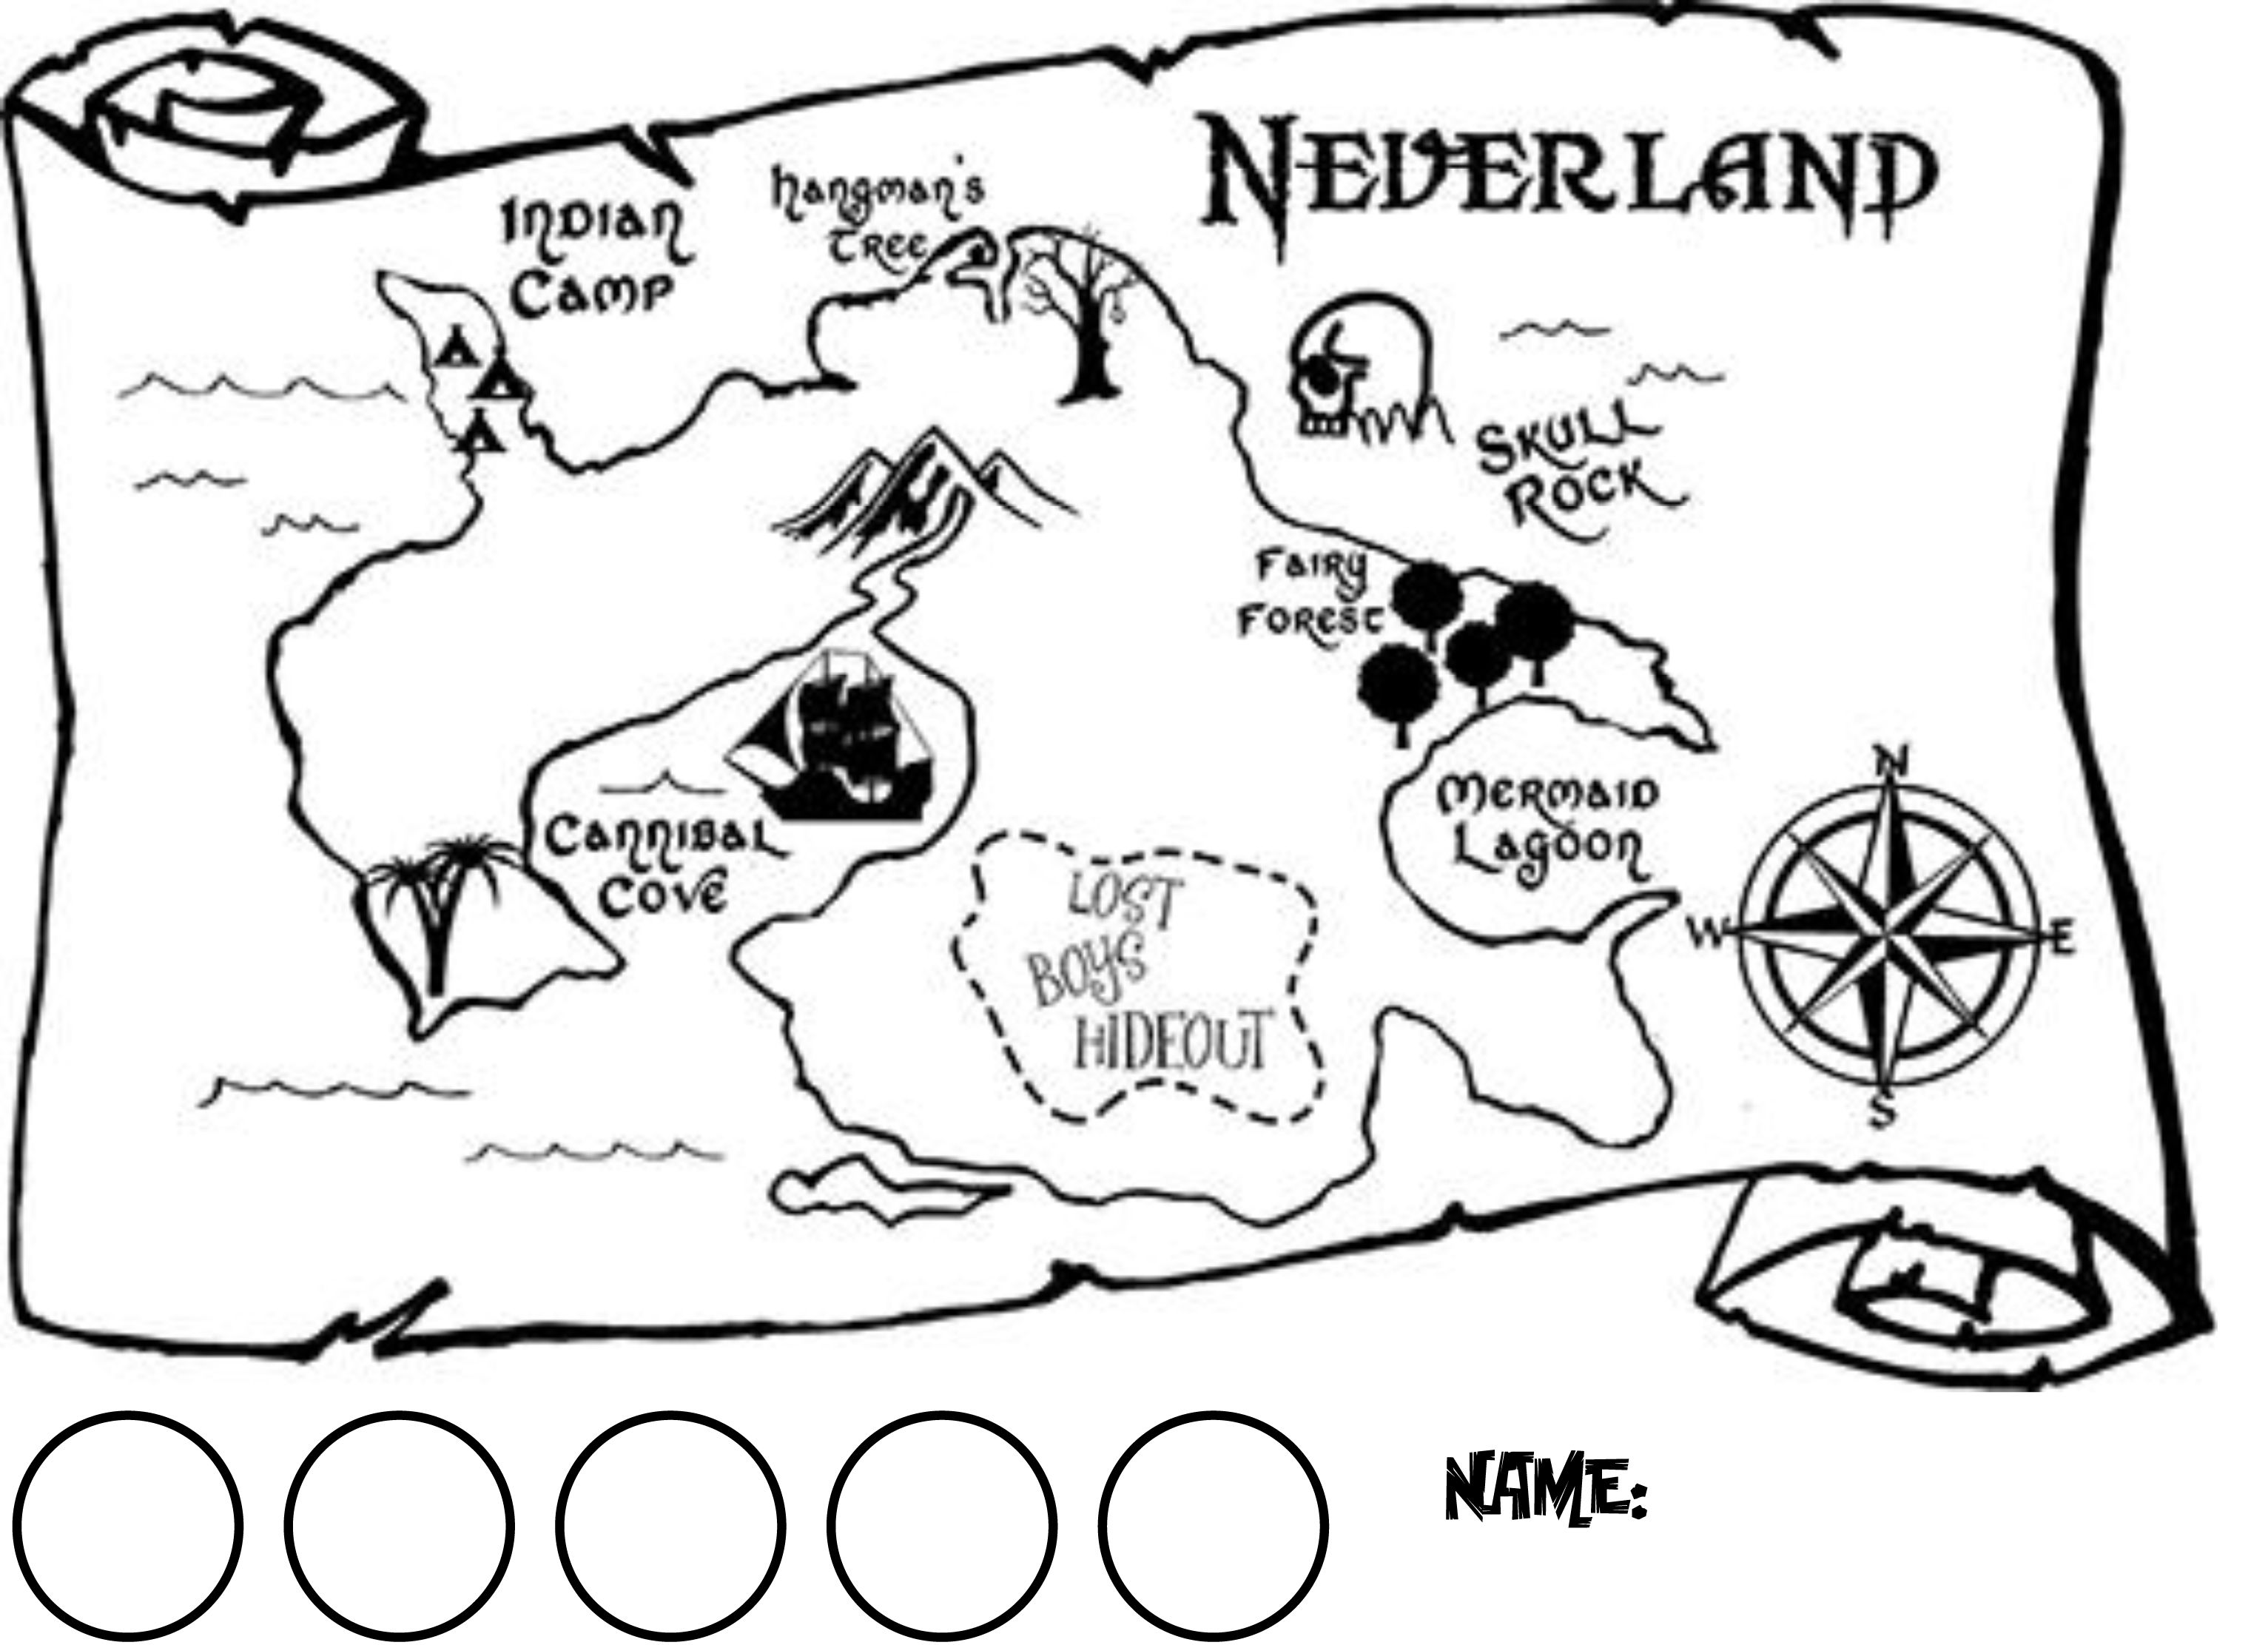 Horizontal Map Of Neverland With Circles For Collecting 1 Gold